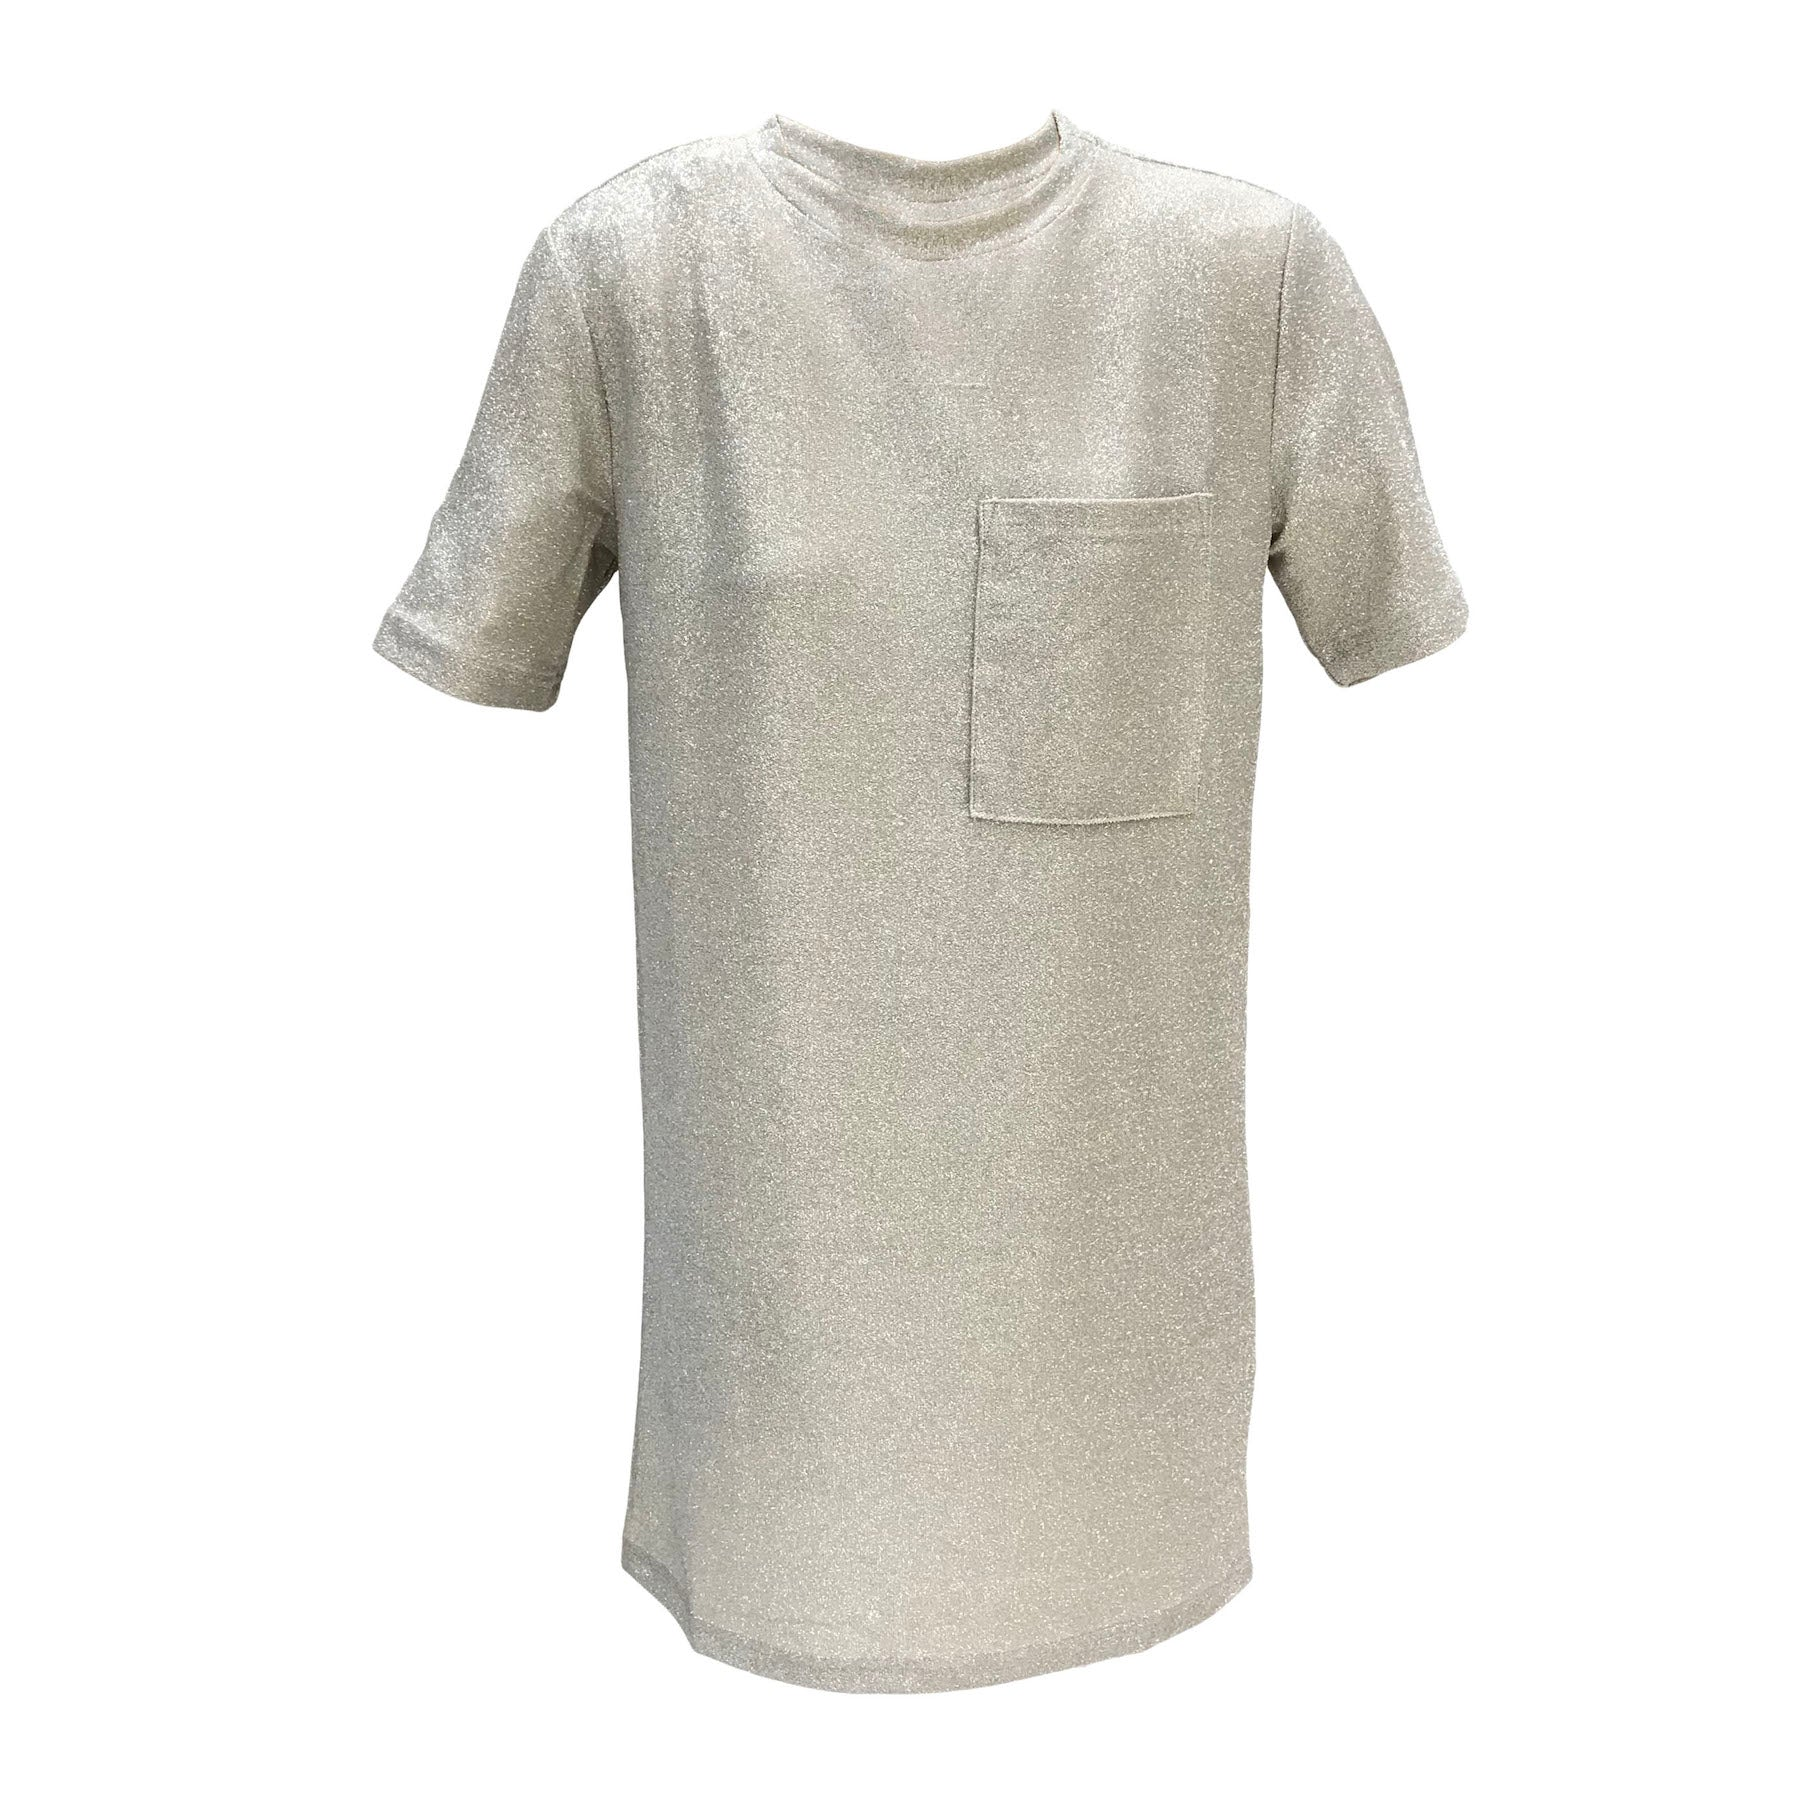 Silver Pocket Tee Dress | Grunt (Denmark) - SIZE M ONLY